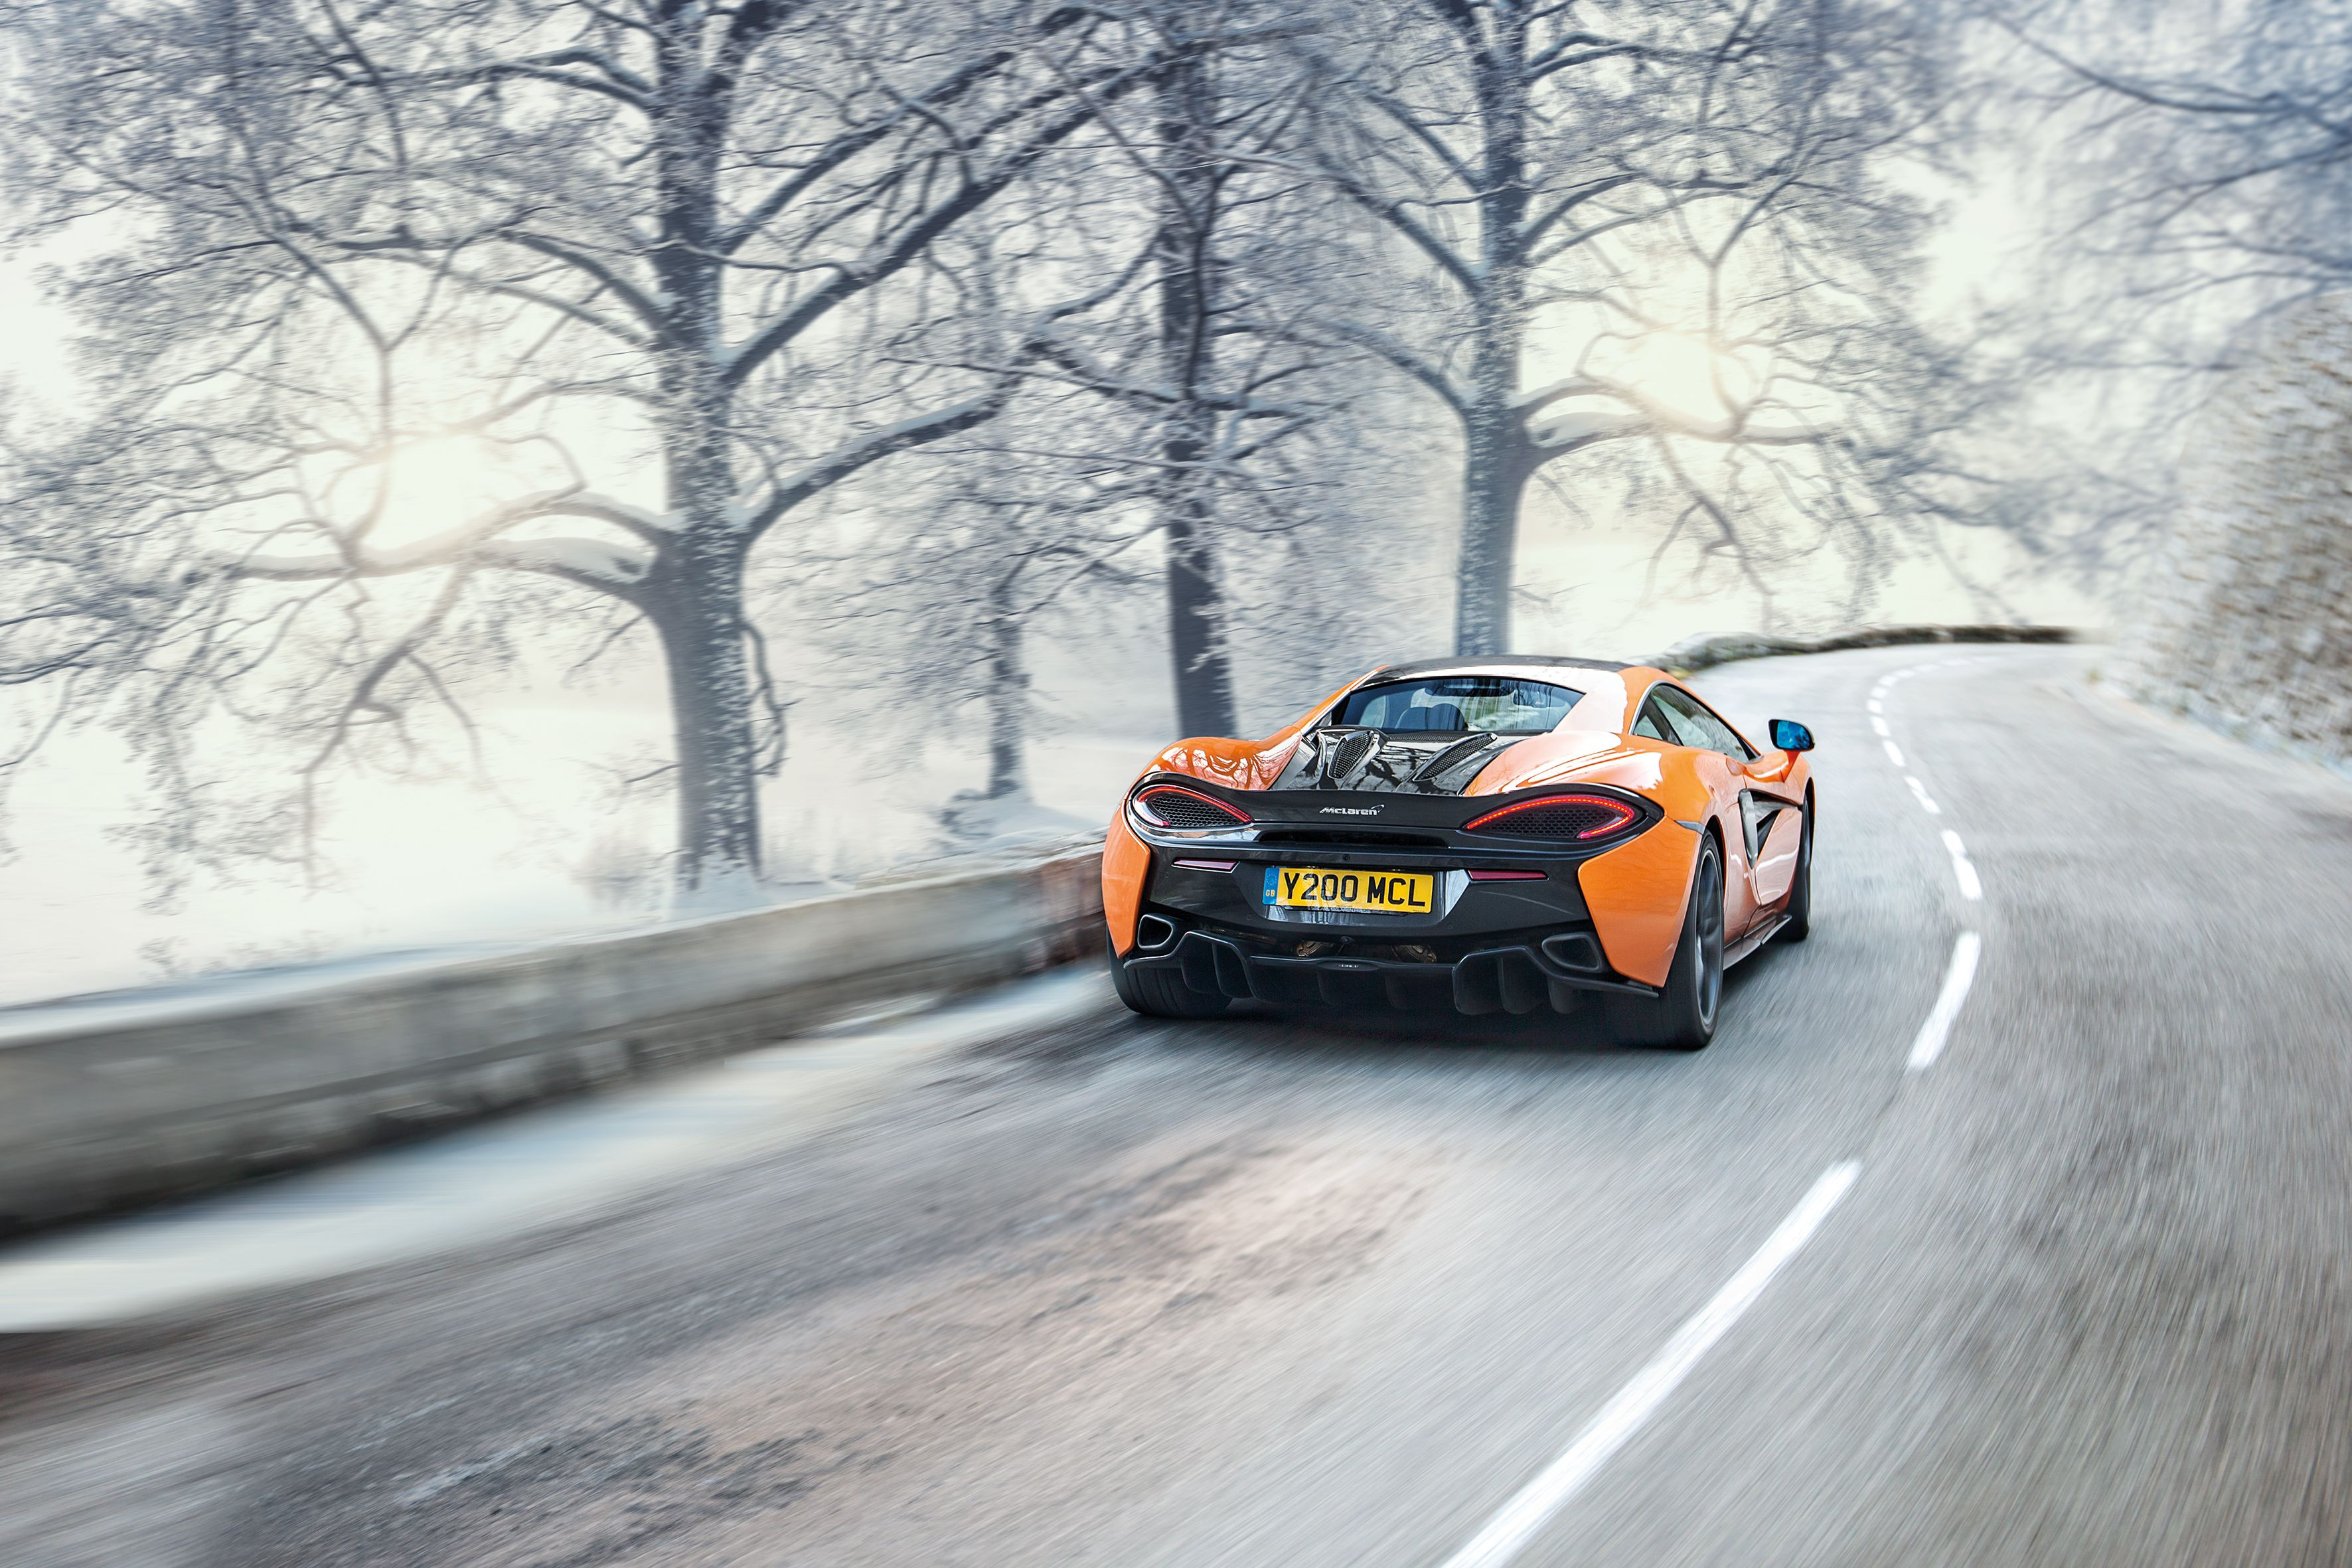 Mclaren driving on frosty and snowy road